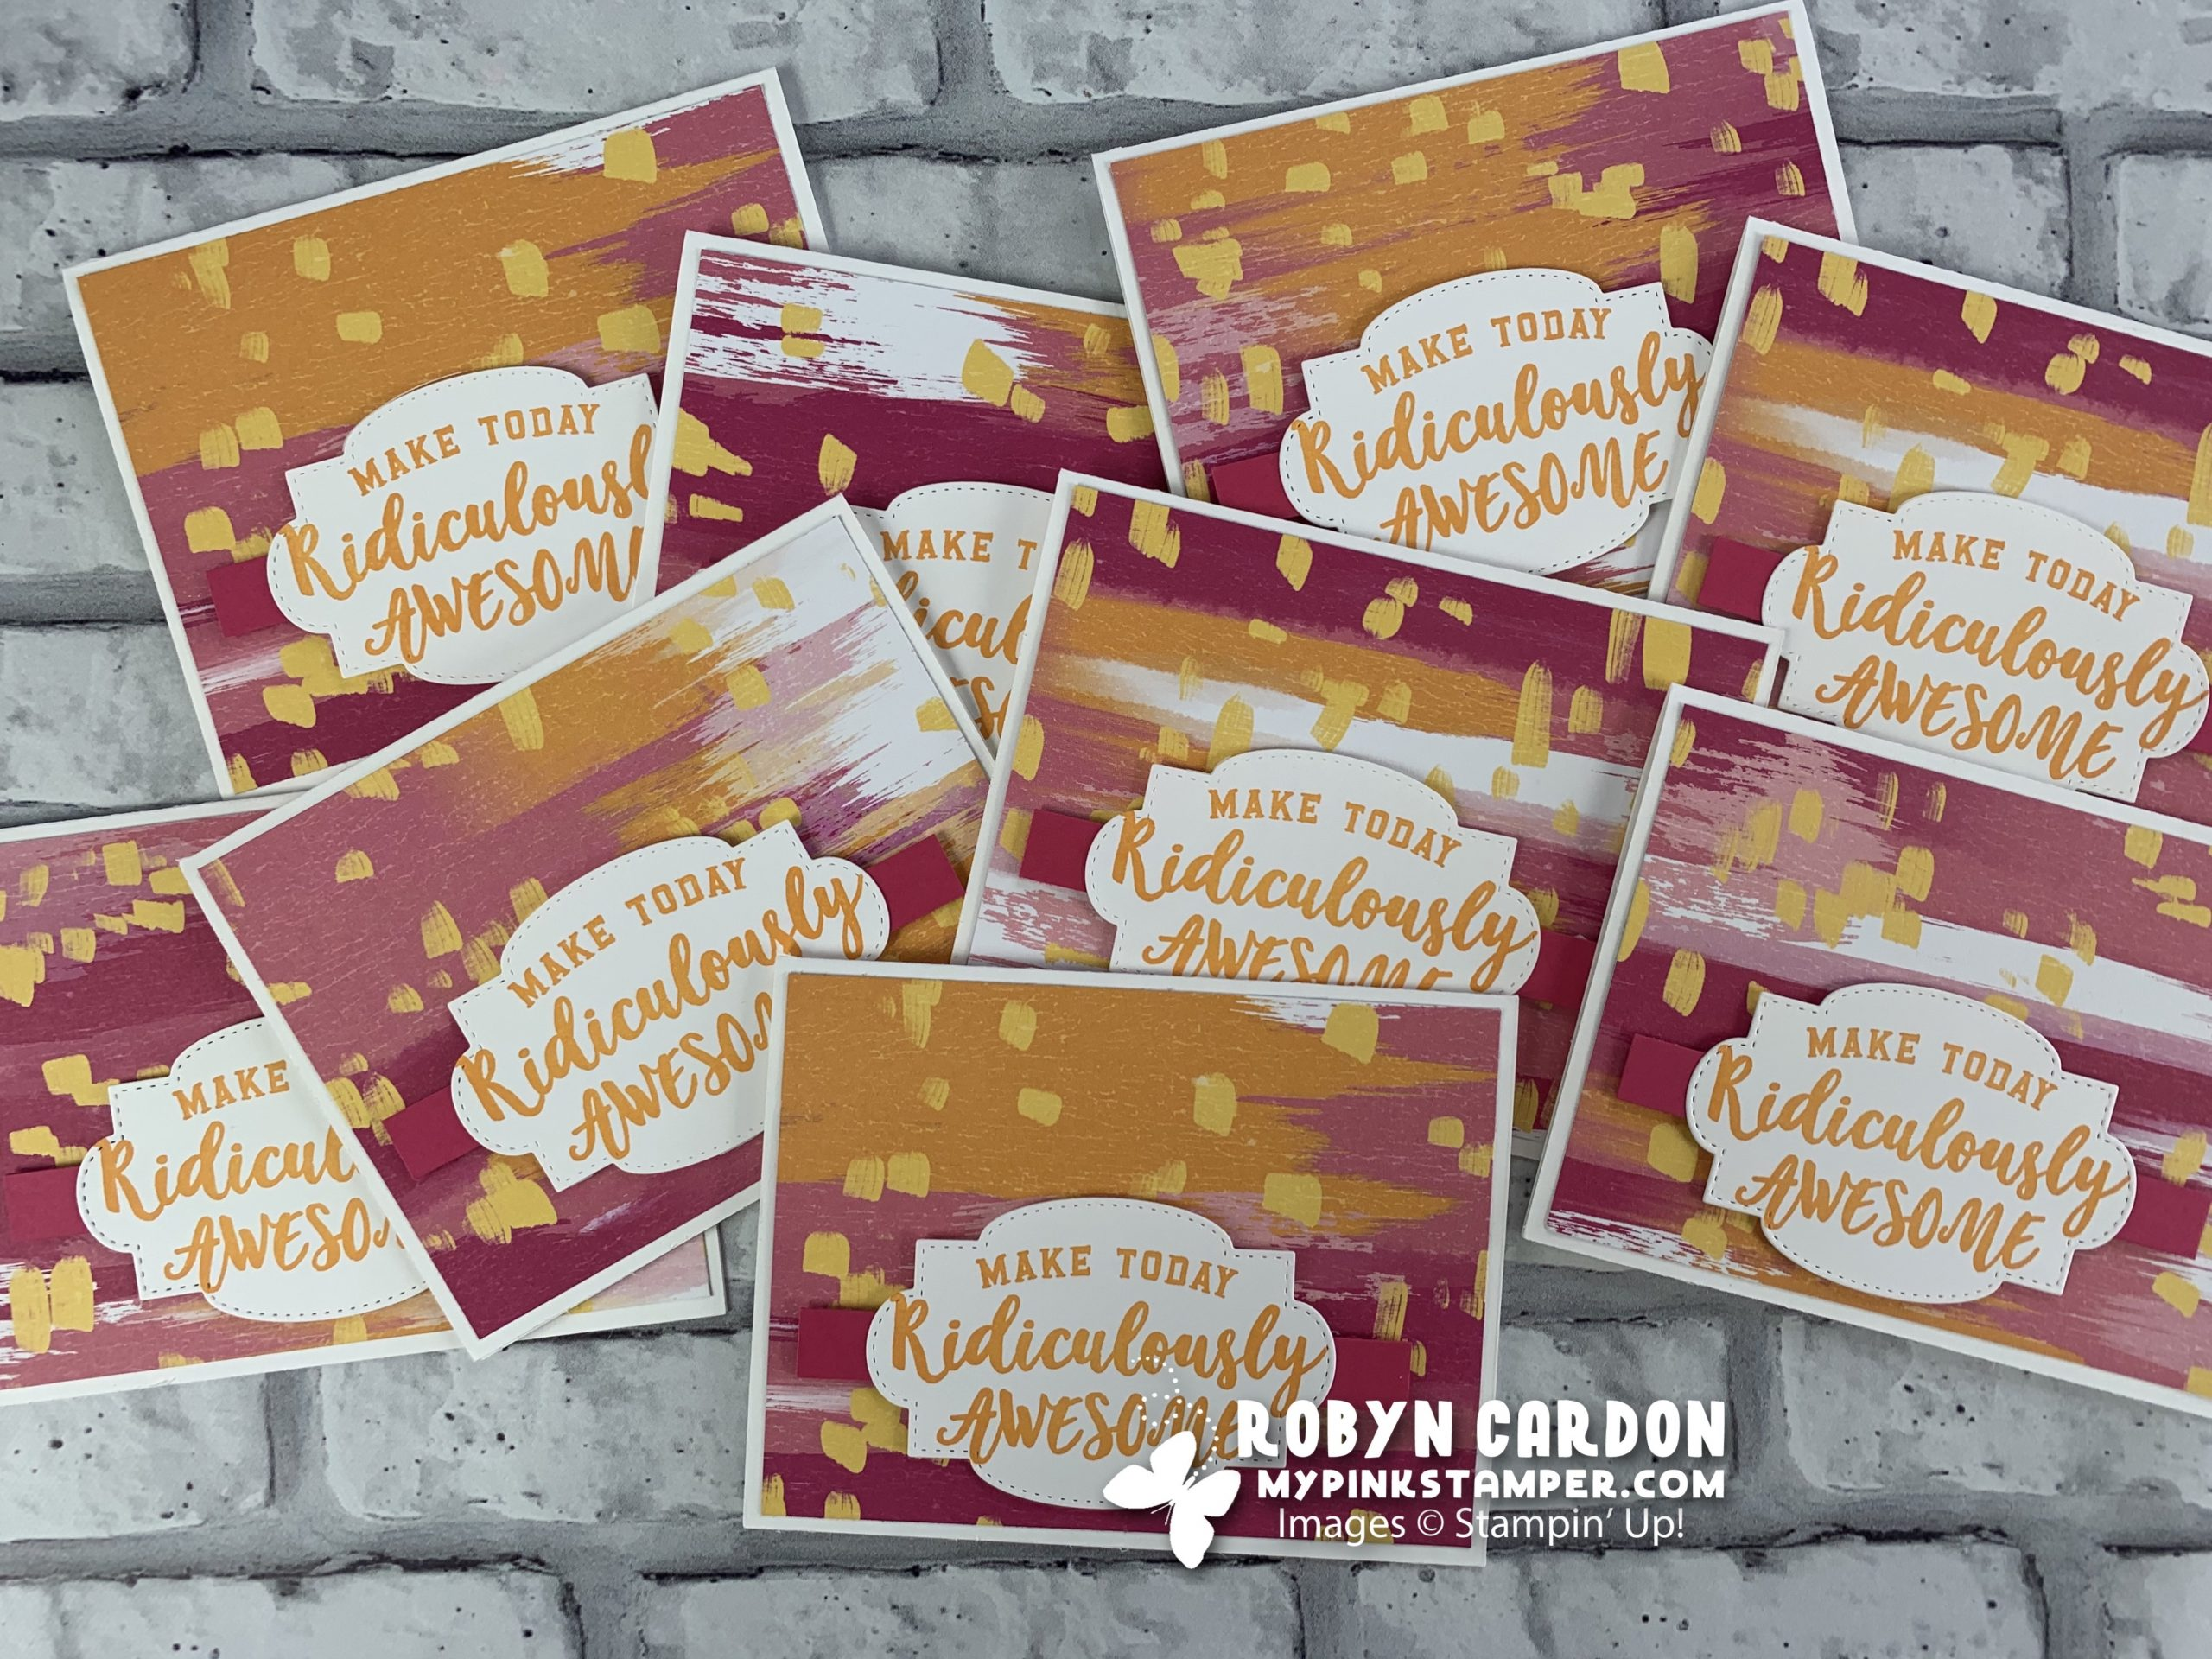 Stampin' Up! Ridiculously Awesome Card & World Card Making Day Giveaway!